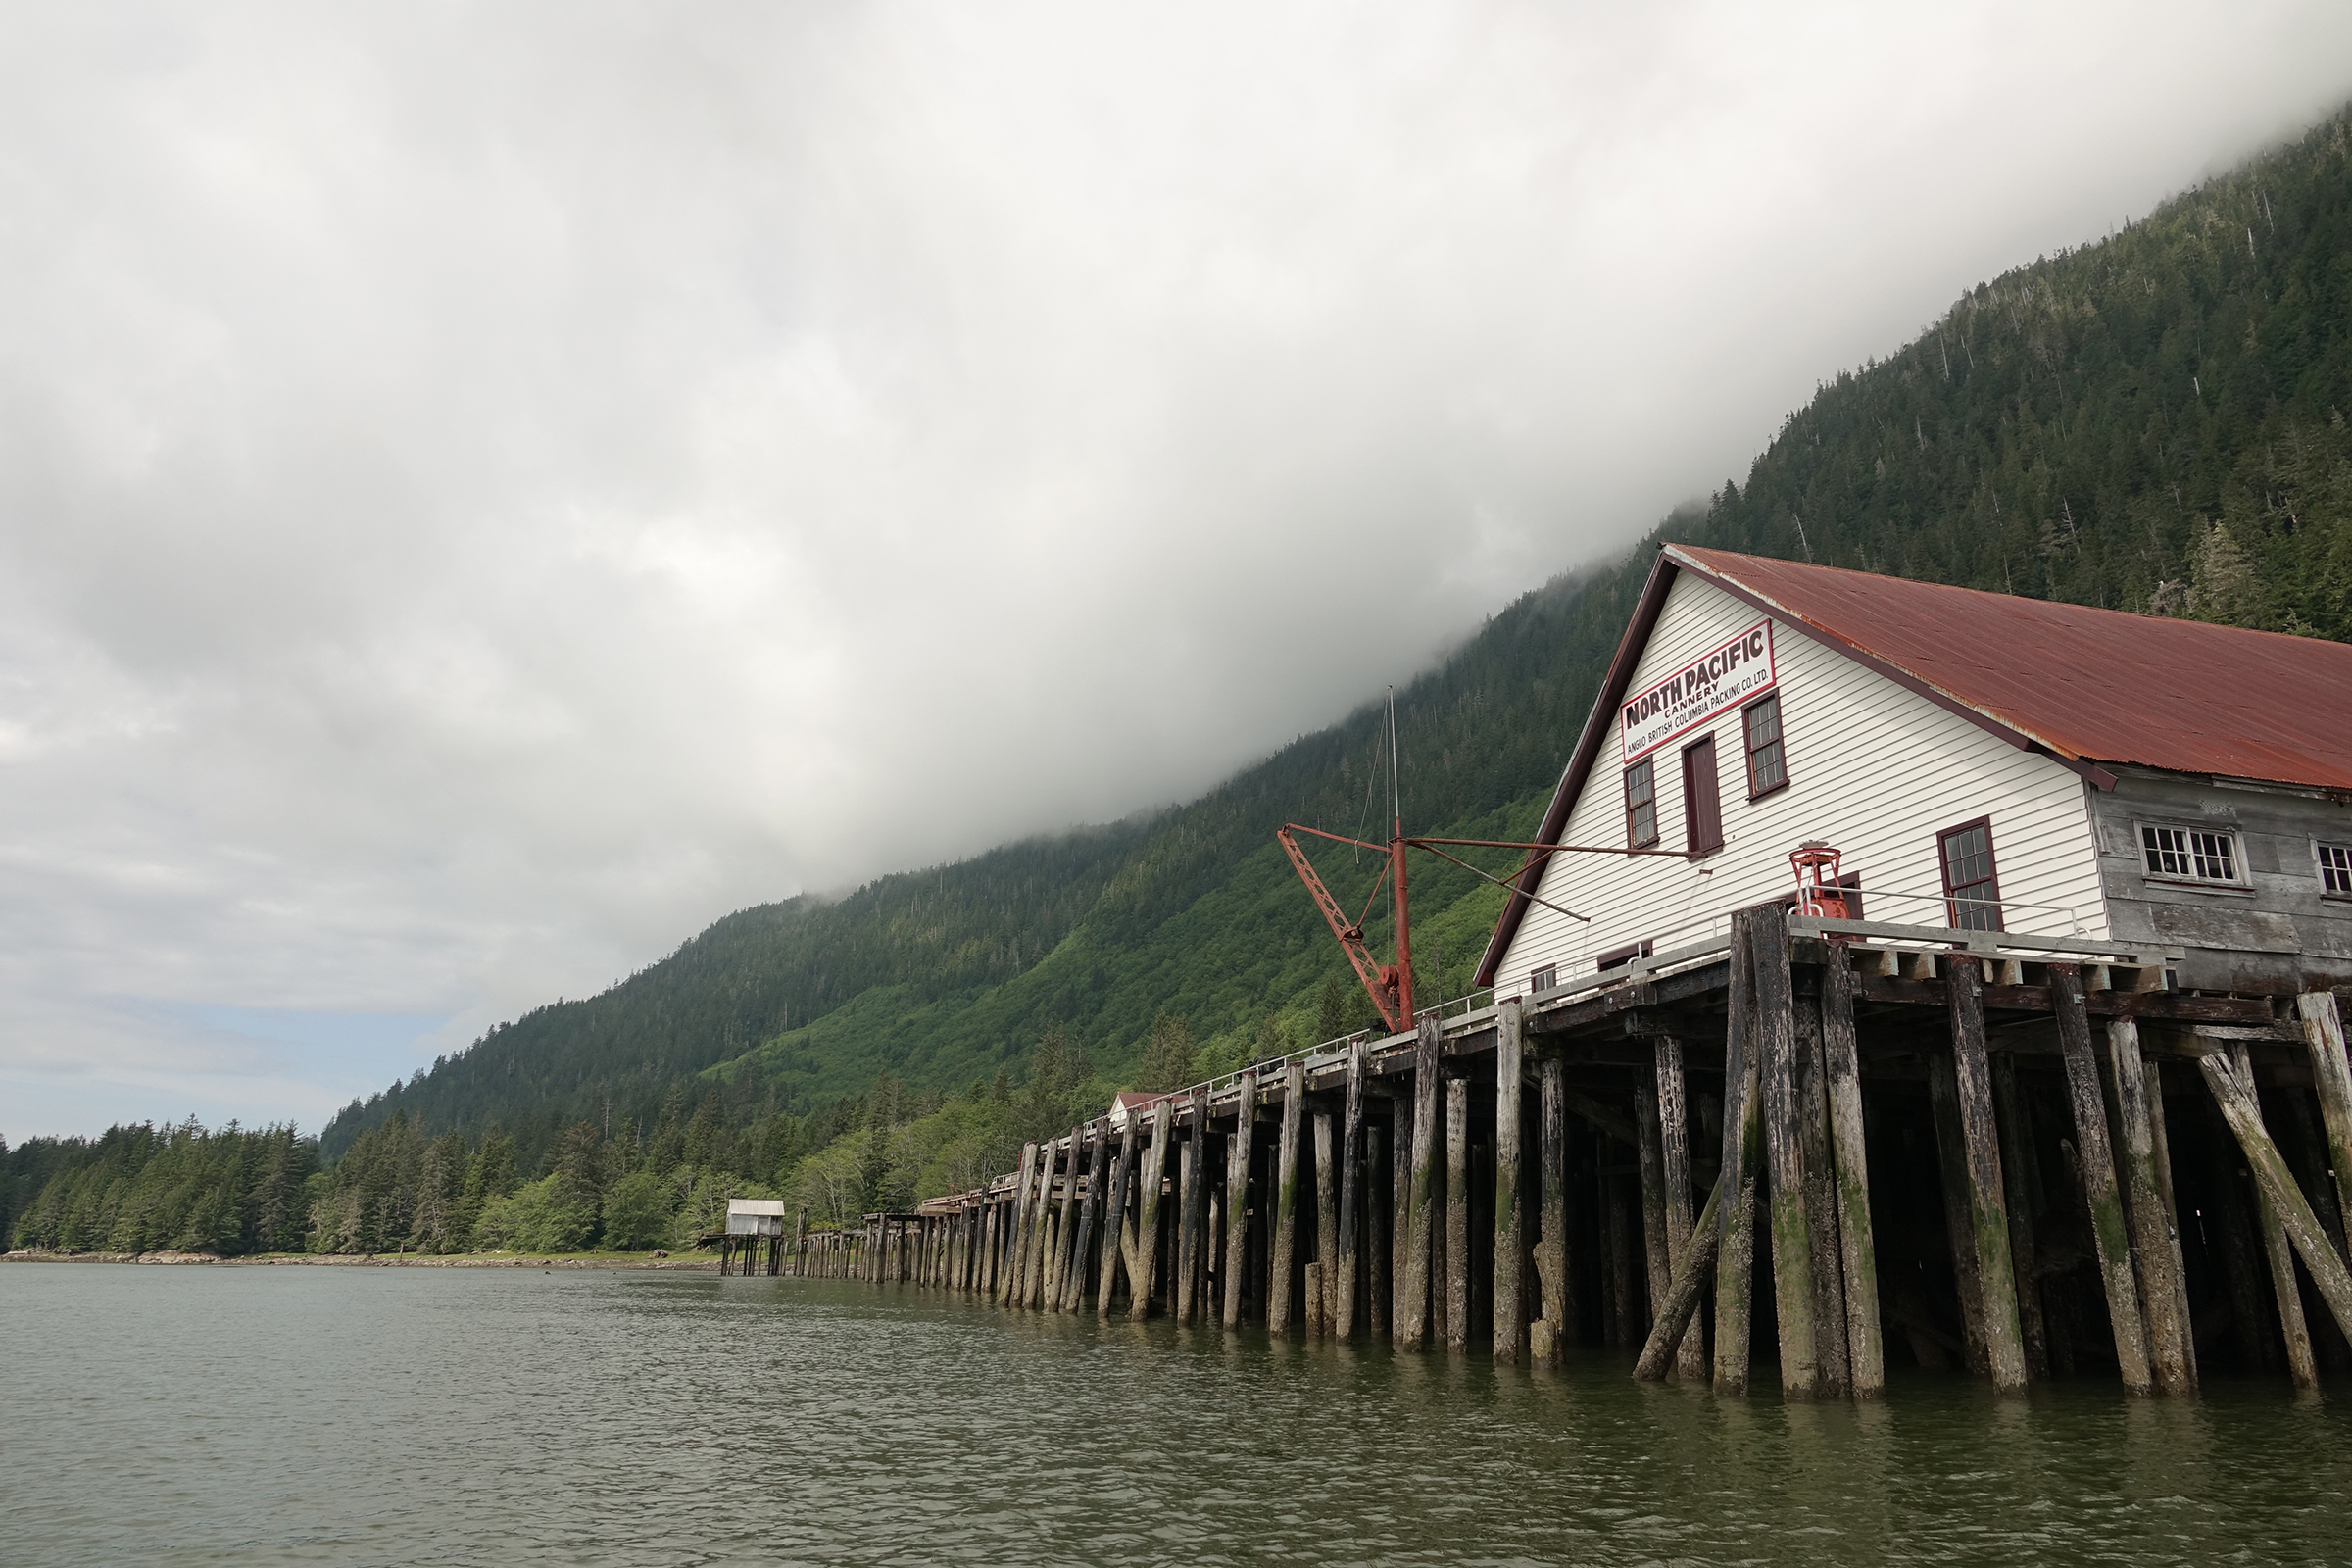 On the north bank of the Skeena River, just west of the ruins of Port Essington, sits this disused cannery, now the North Pacific Cannery Museum. None of the more than a dozen canneries that once operated along the Skeena are still in operation today. Photograph by Lesley Evans Ogden